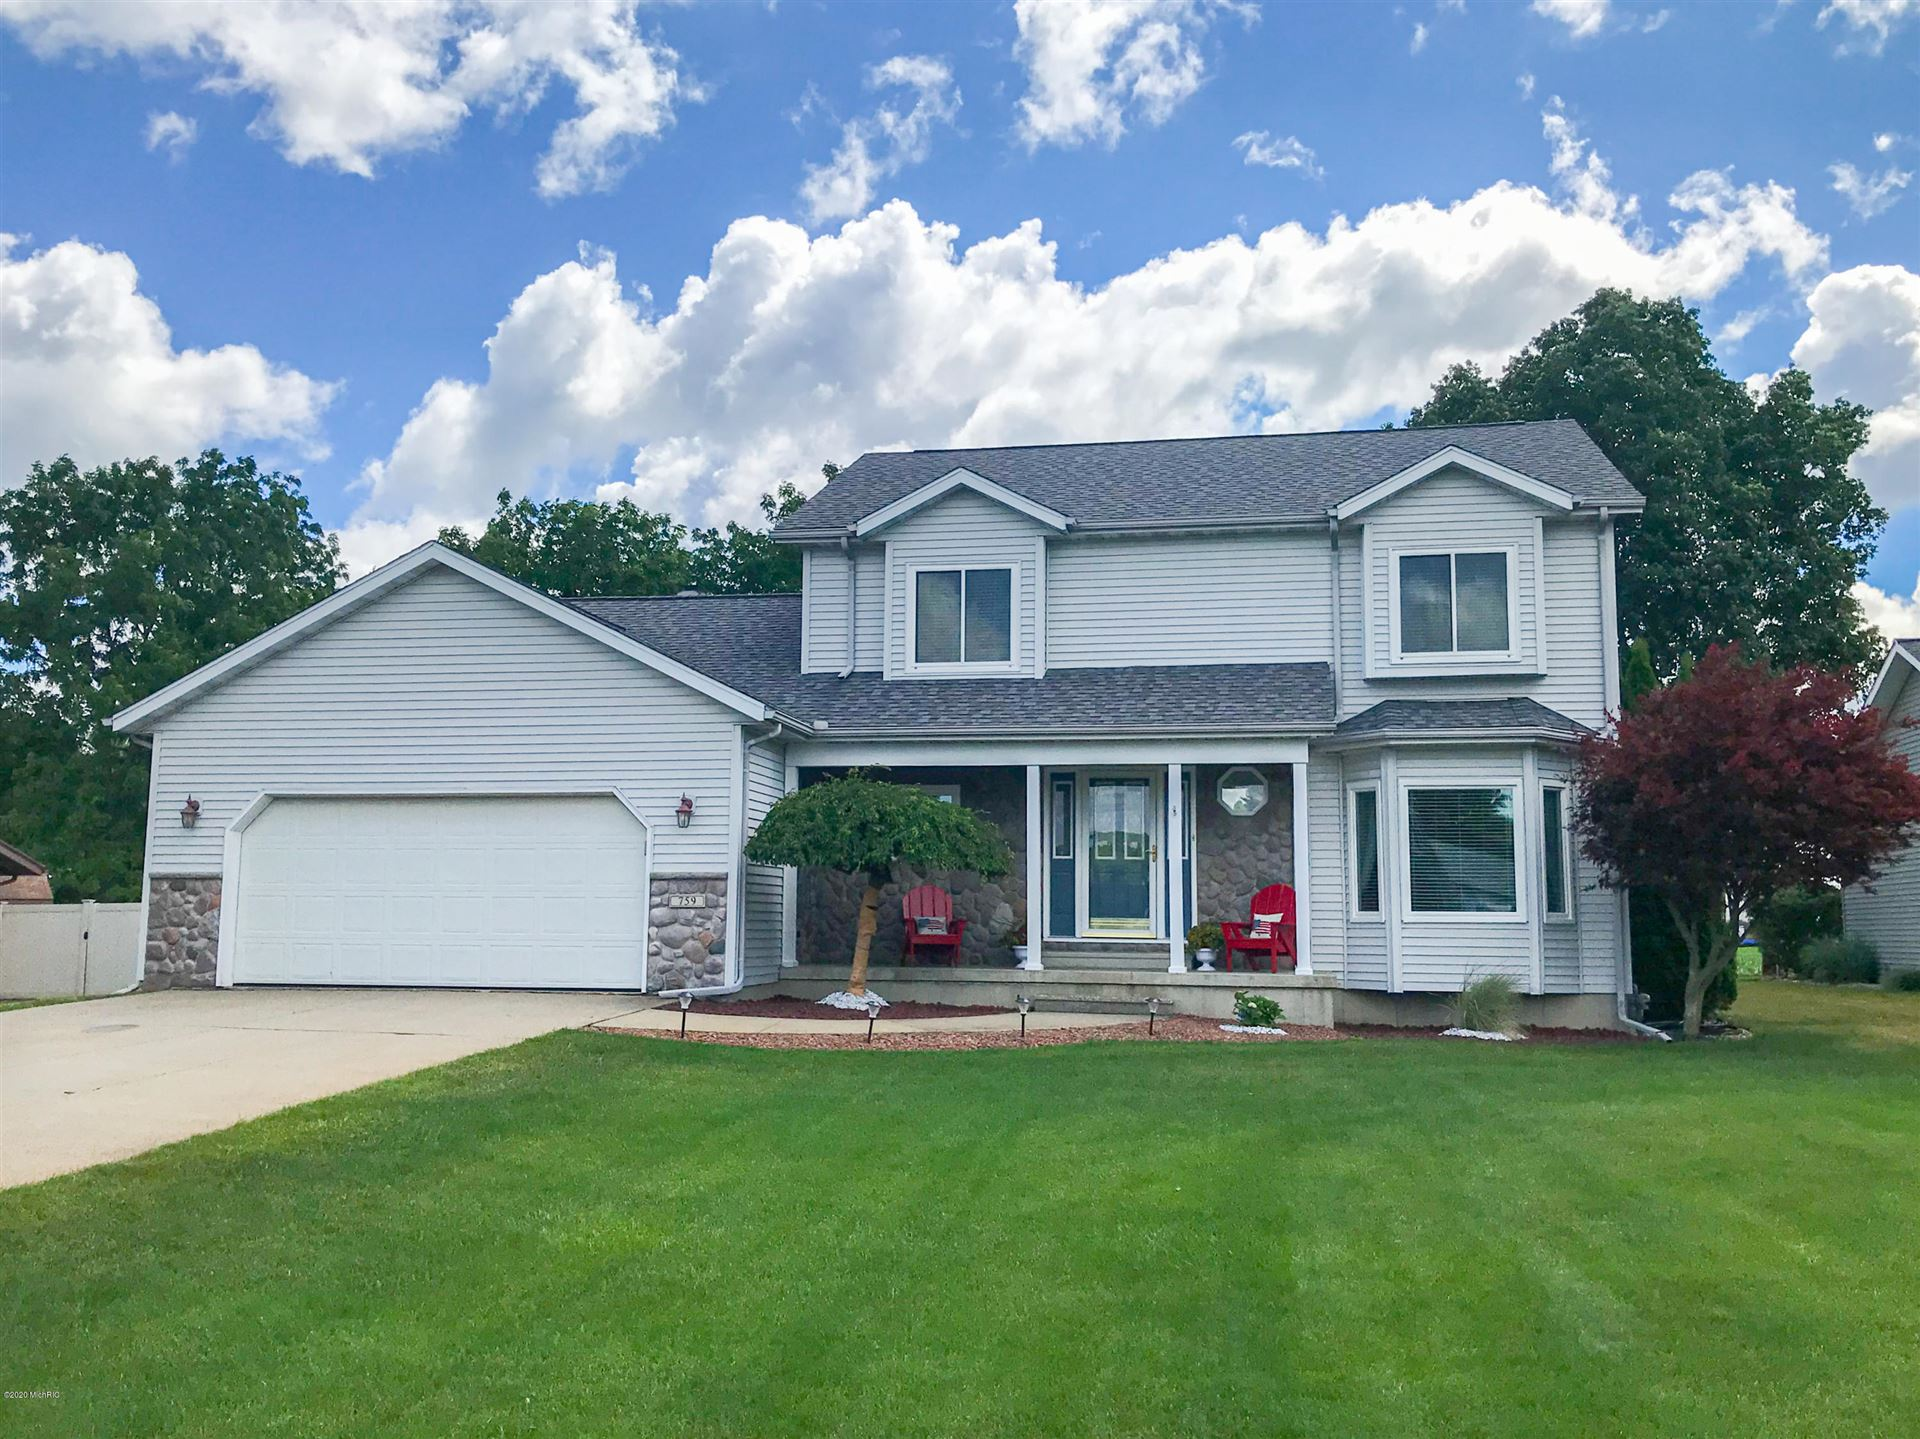 759 Tomahawk Trail, Coldwater, MI 49036 - MLS#: 20023684